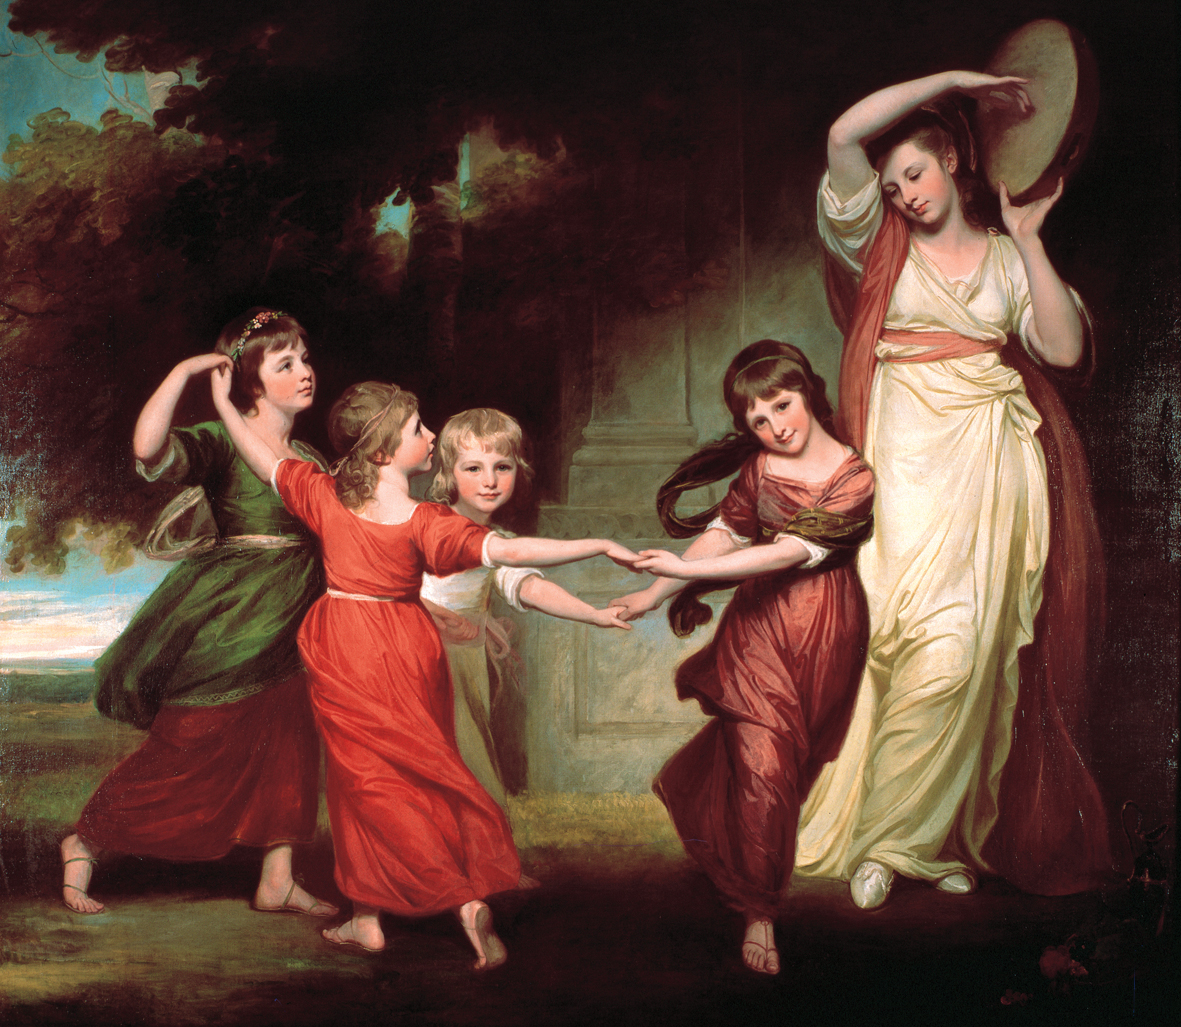 Abbot Hall Art Gallery's collection includes 18th century paintings by George Romney and another local artist Daniel Gardner